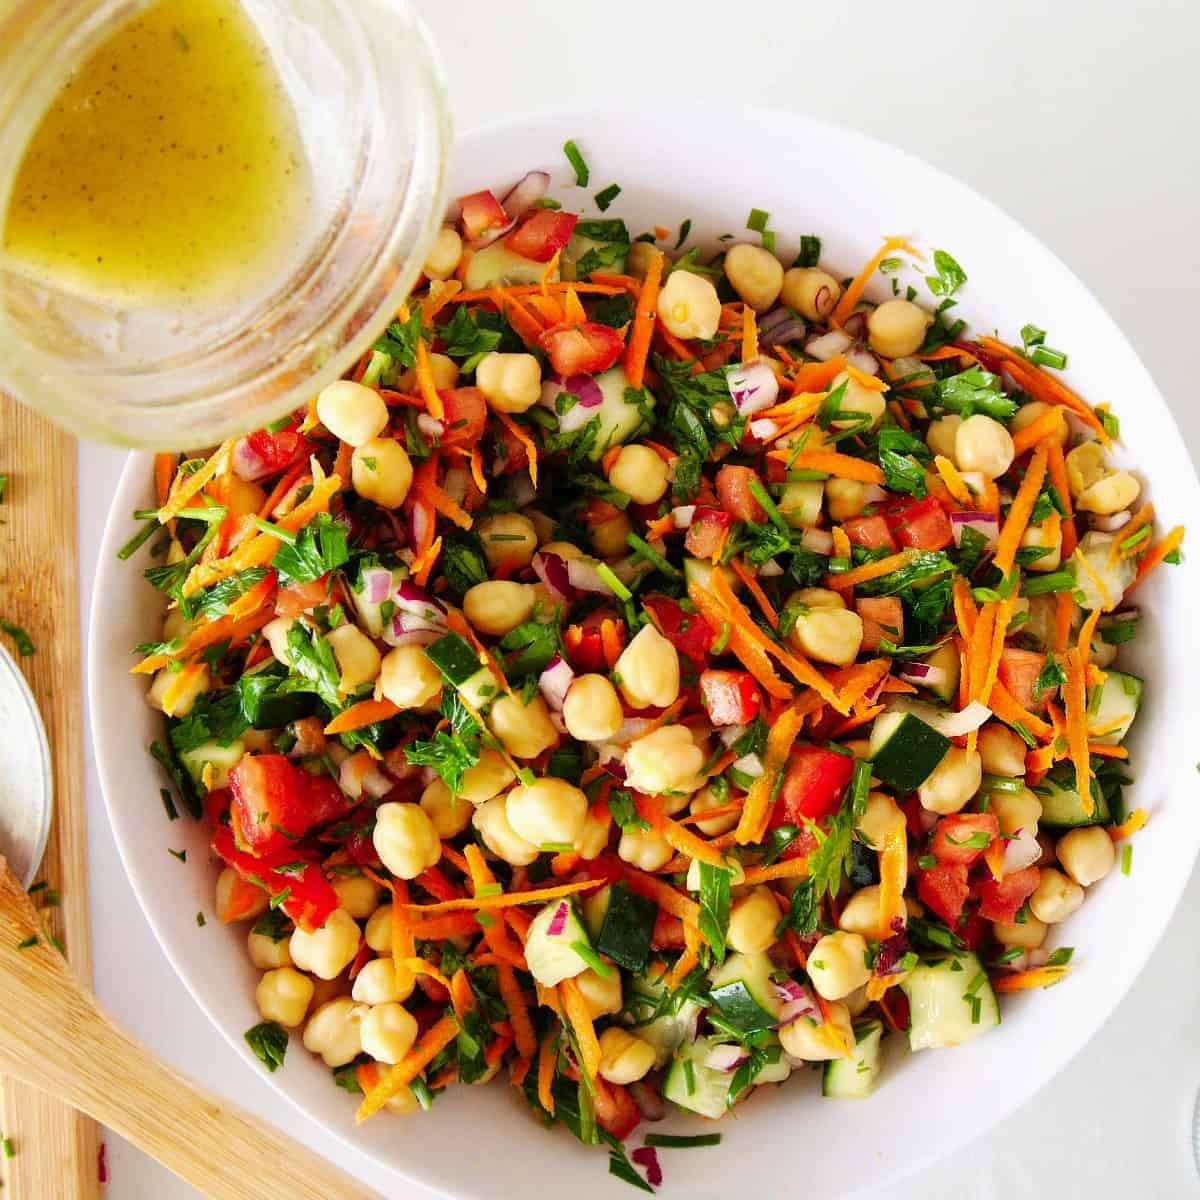 Overhead view of chickpea salad with lemon dressing being poured over the top.